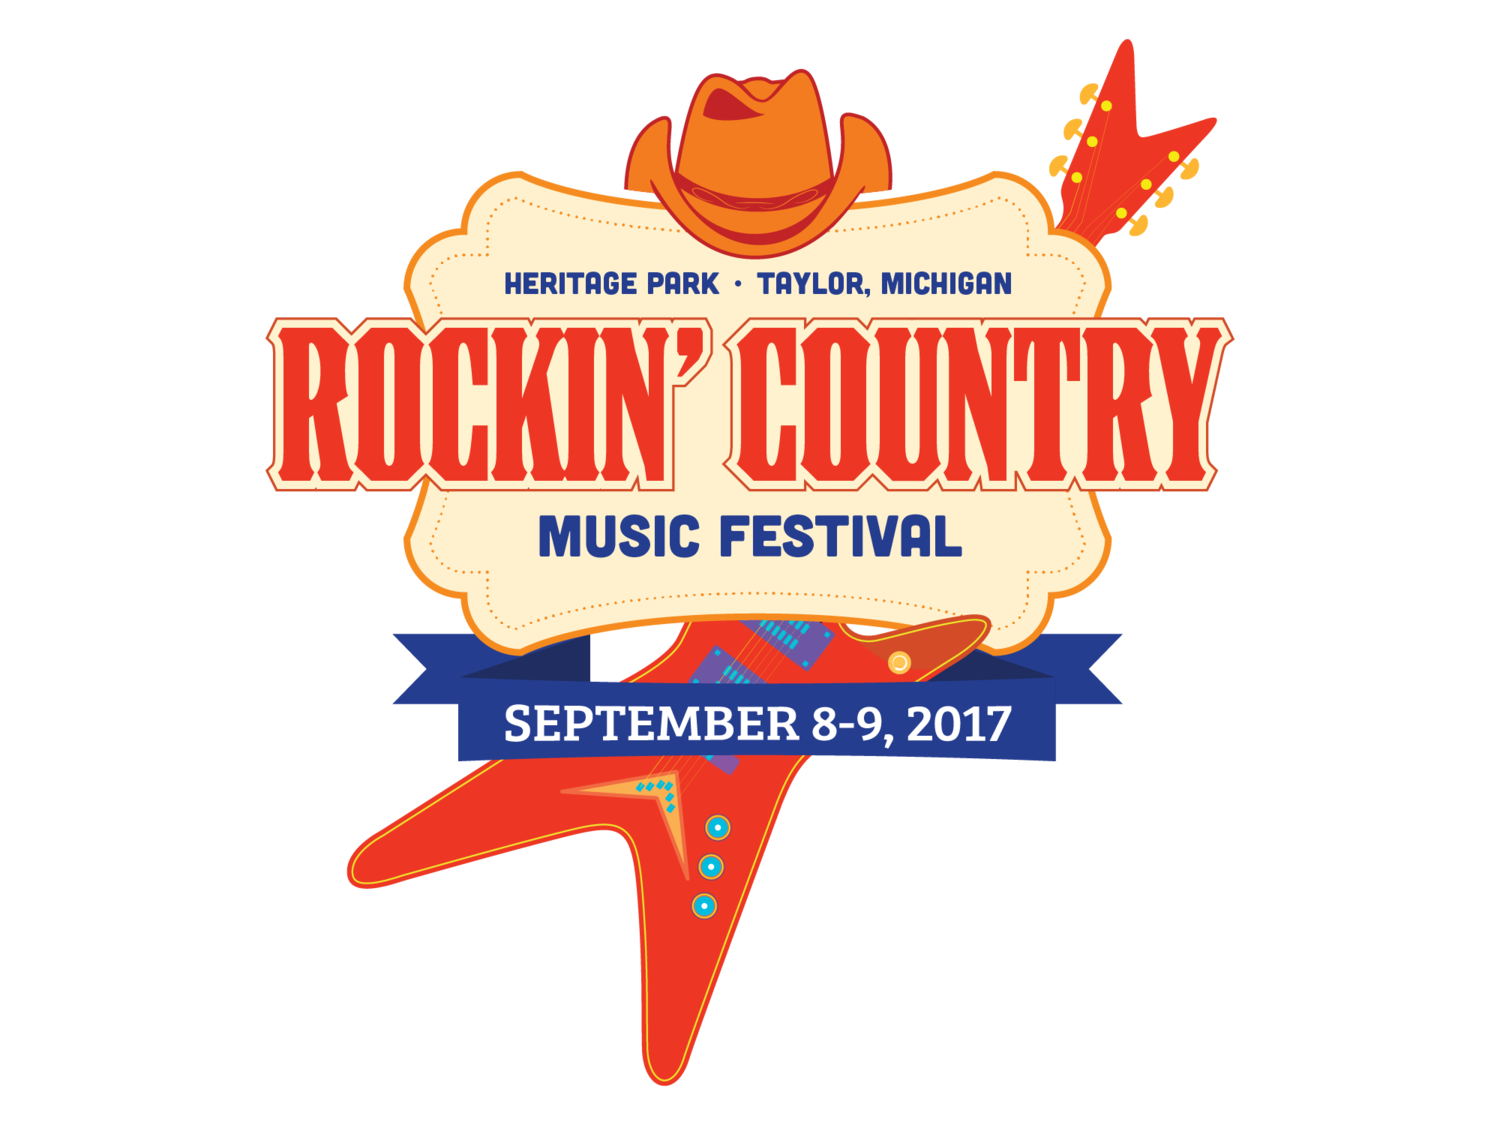 Rockin' Country Music festival